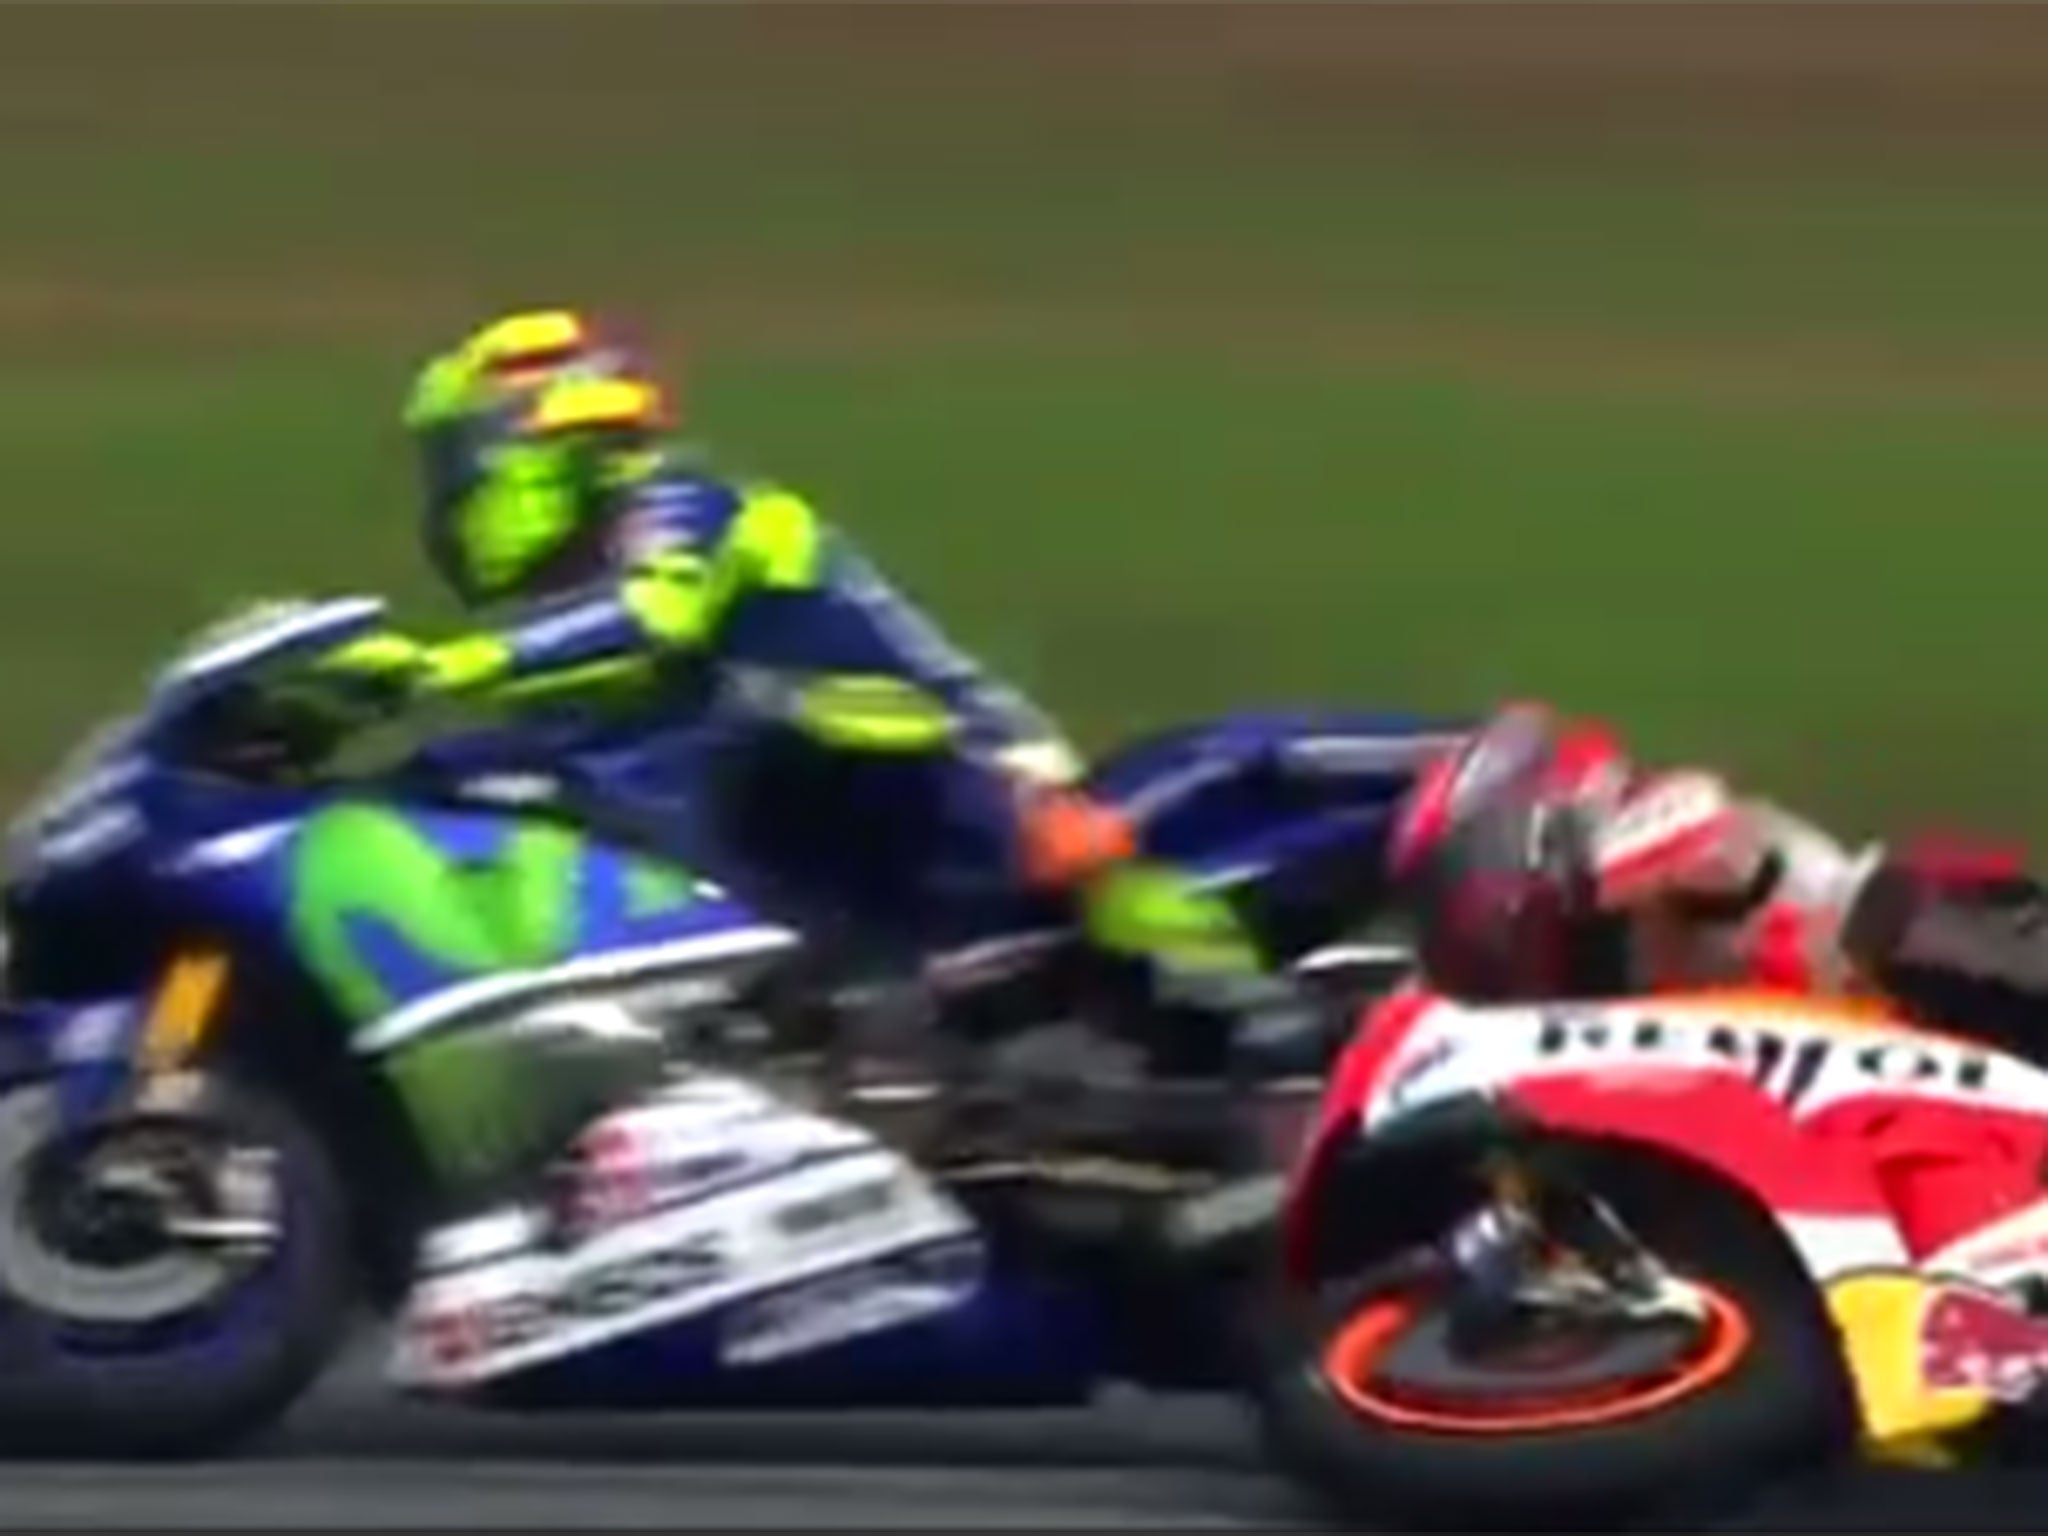 Valentino Rossi 'kicks' Marc Marquez from bike causing crash at MotoGP Malaysian Grand Prix ...